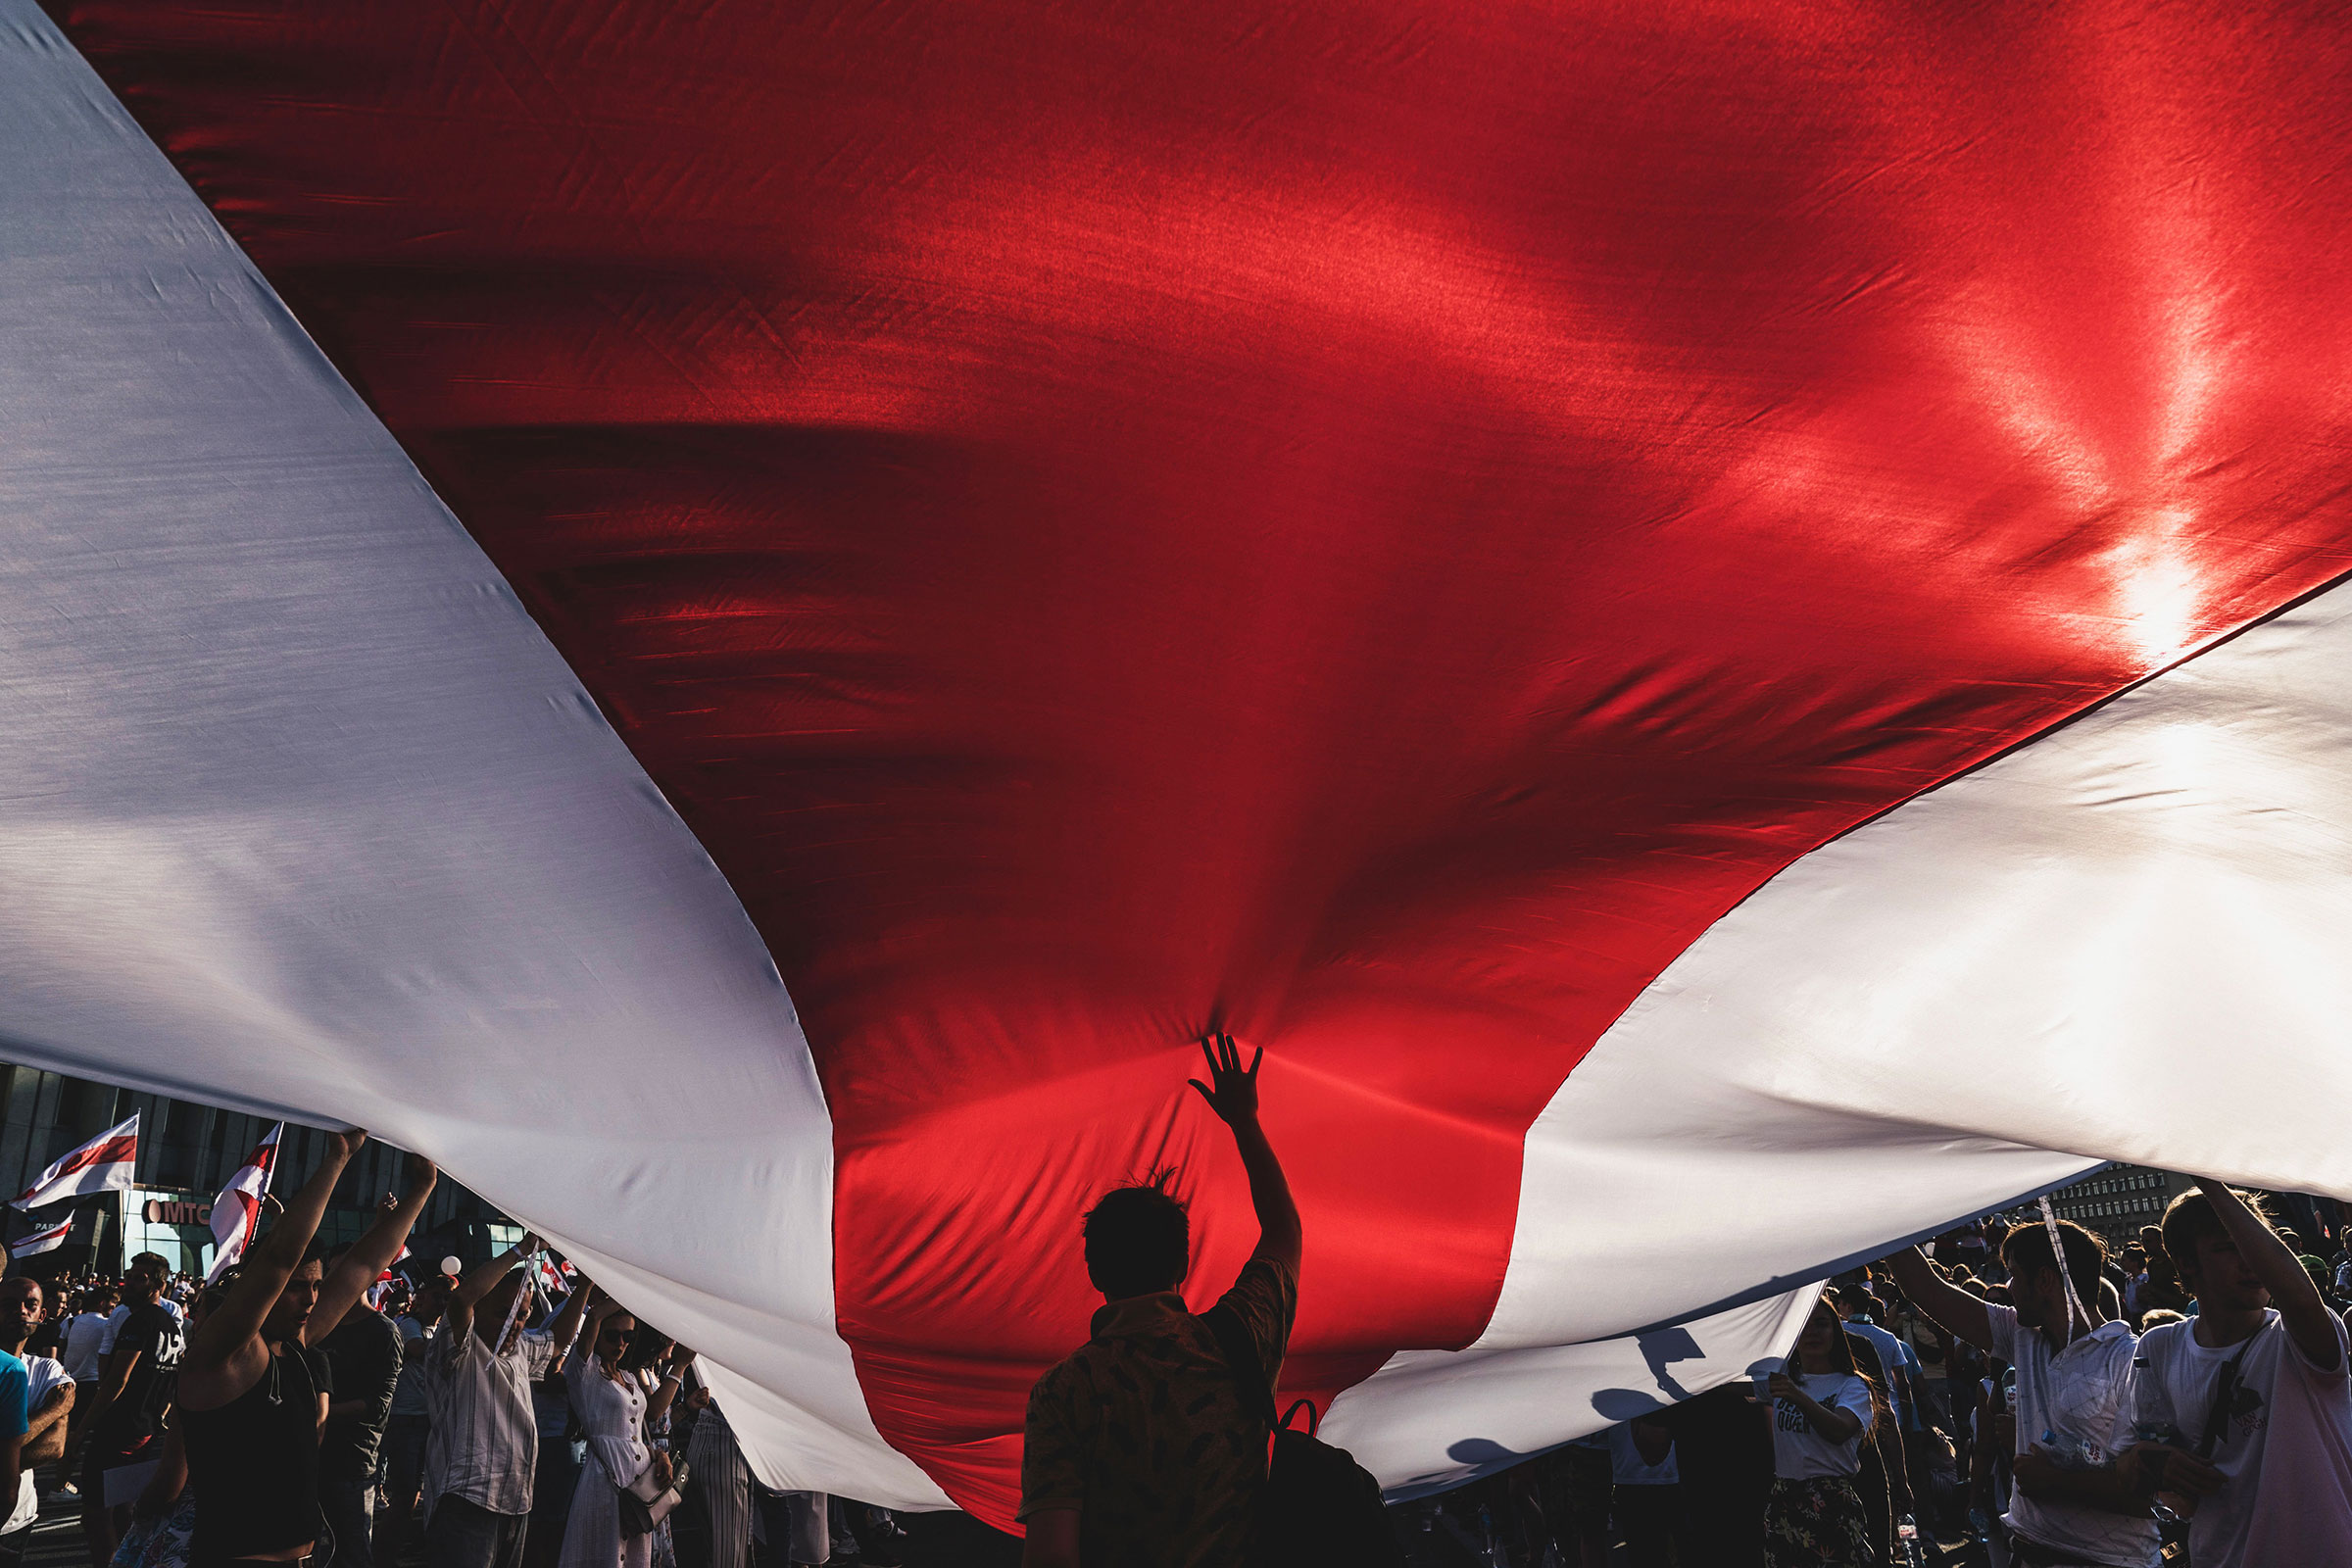 Protesters unfurl a banner in the colors of the former Belarus national flag as they call for the resignation of President Alexander Lukashenko in Minsk, Belarus, on, Aug. 16, 2020.